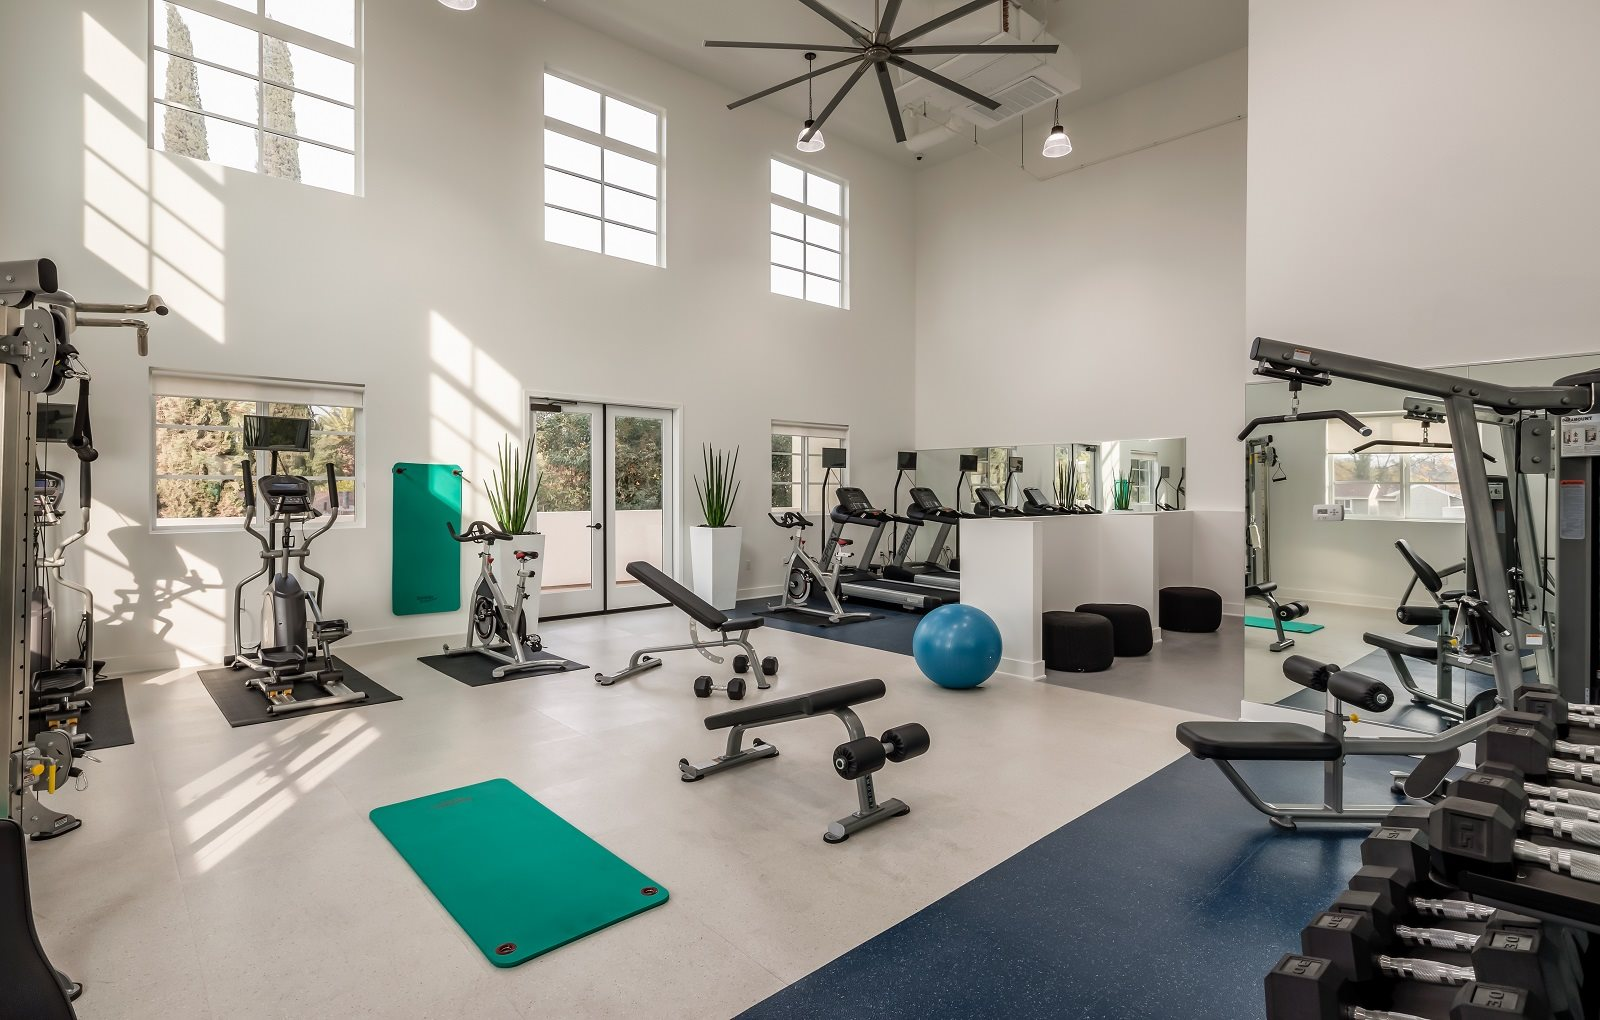 State-of-the-Art Fitness Center at Luxe, Pasadena,California